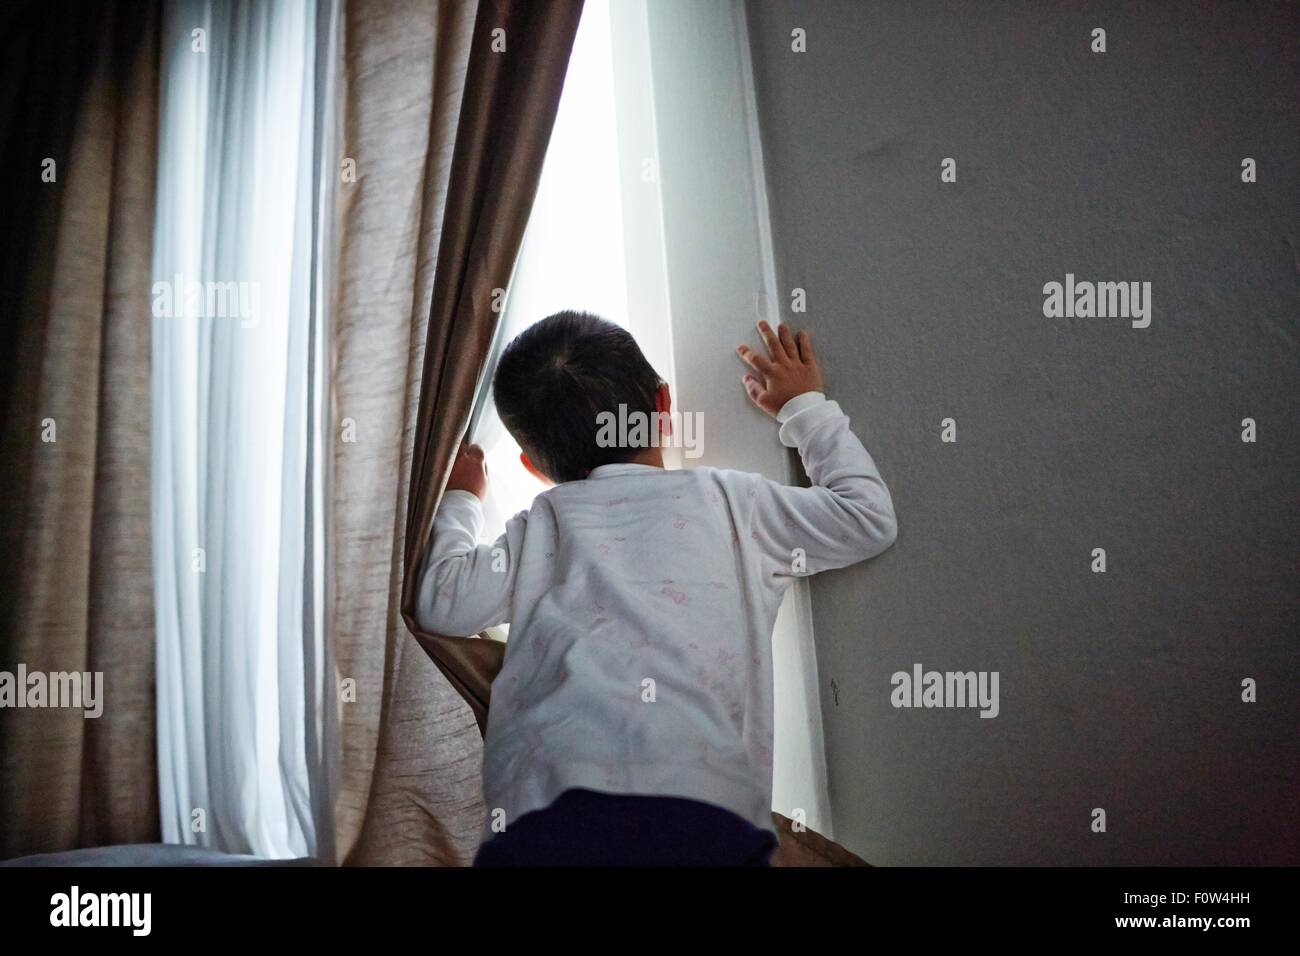 Boy peeking out from curtain - Stock Image